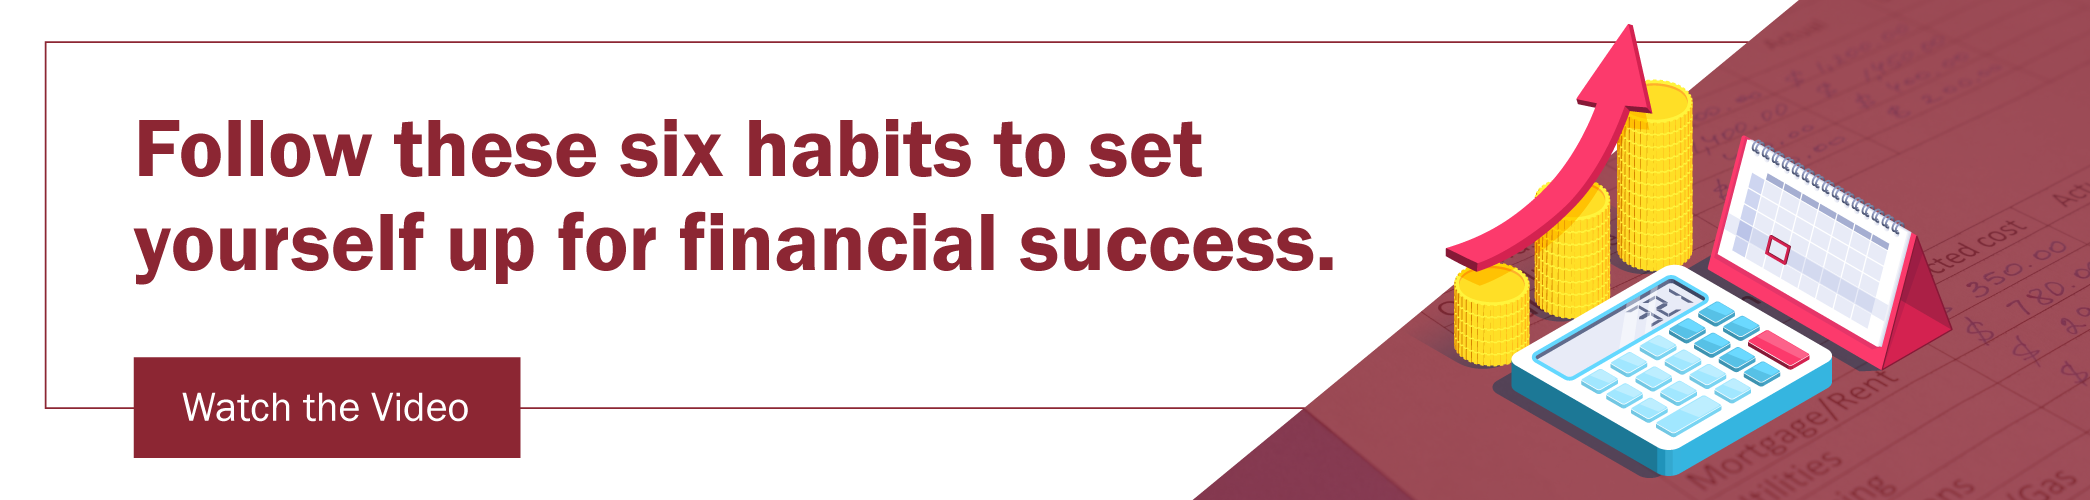 Watch Video: 6 Financial Habits to Set Yourself up for Success